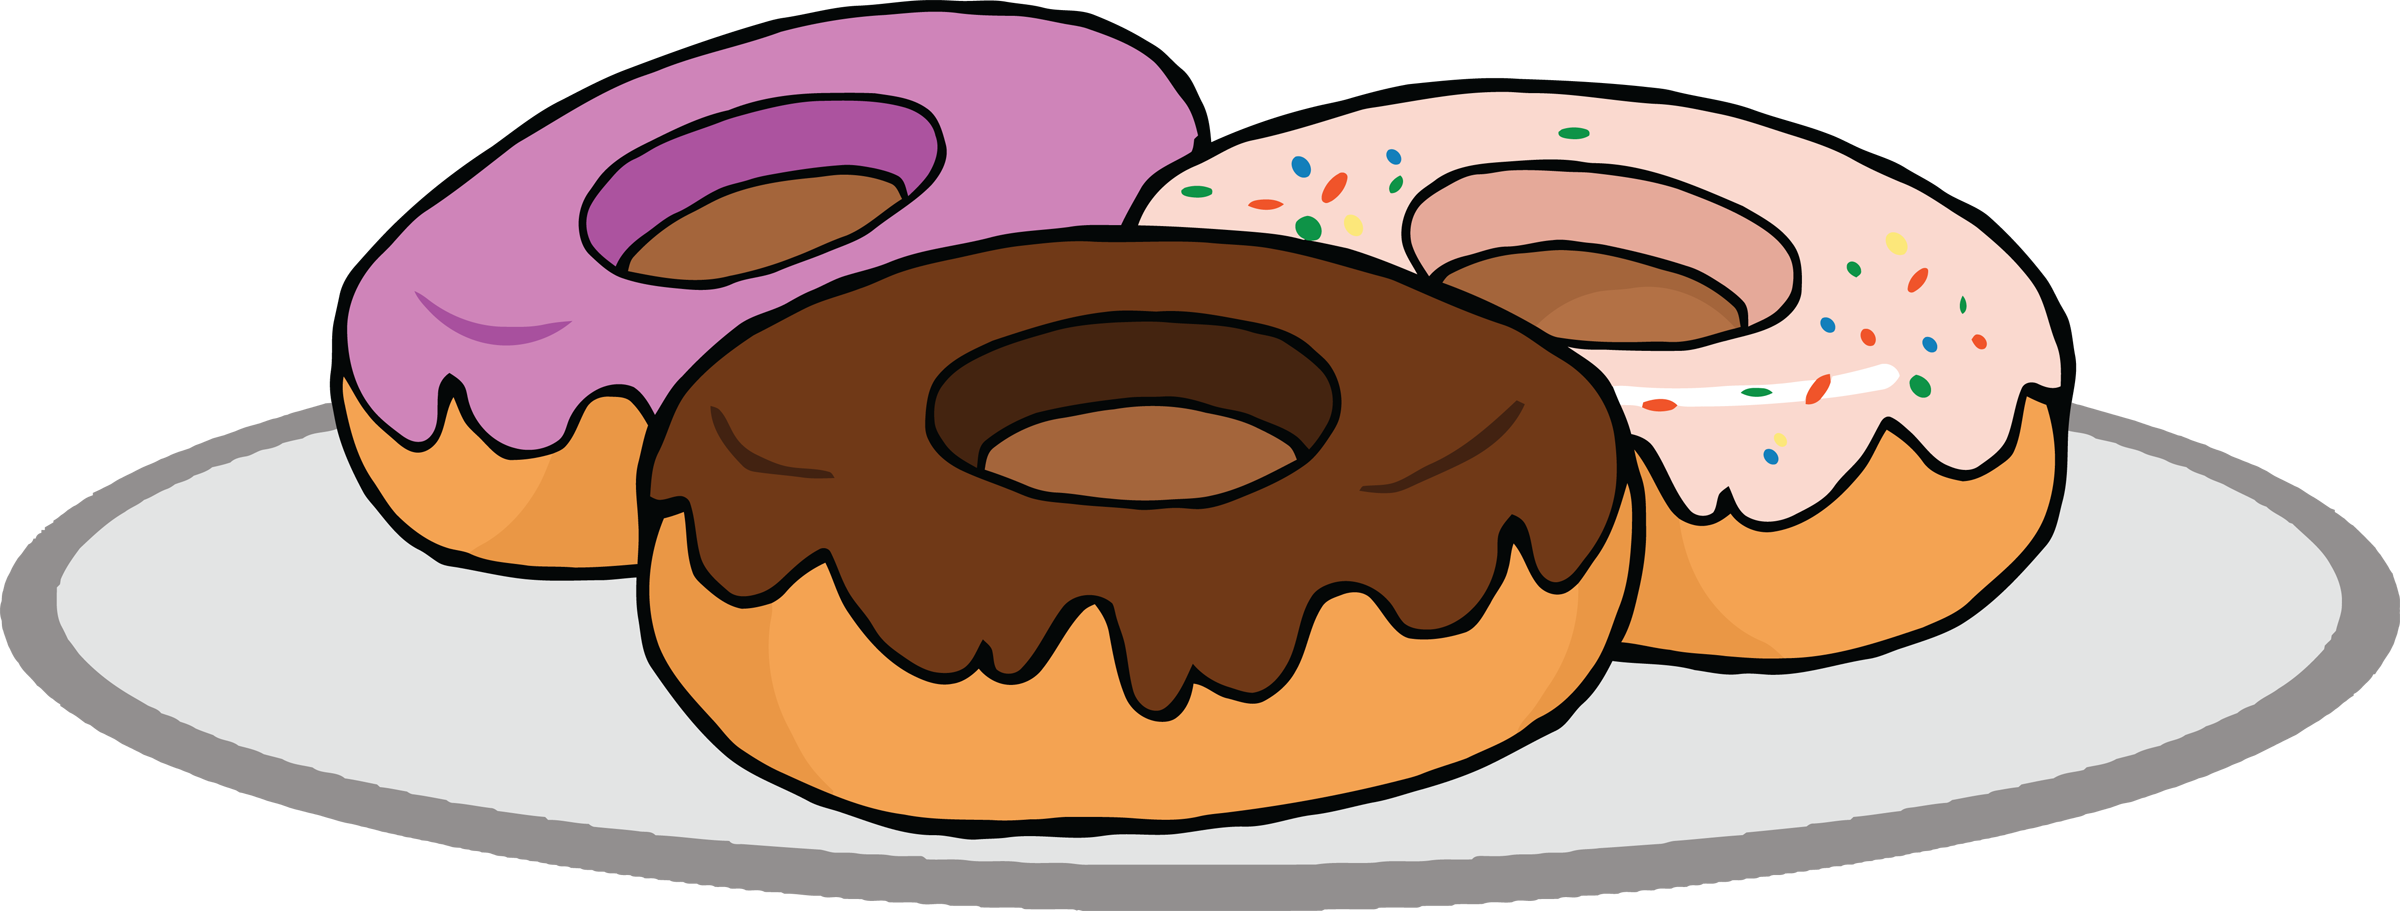 Doughnut clipart #3, Download drawings